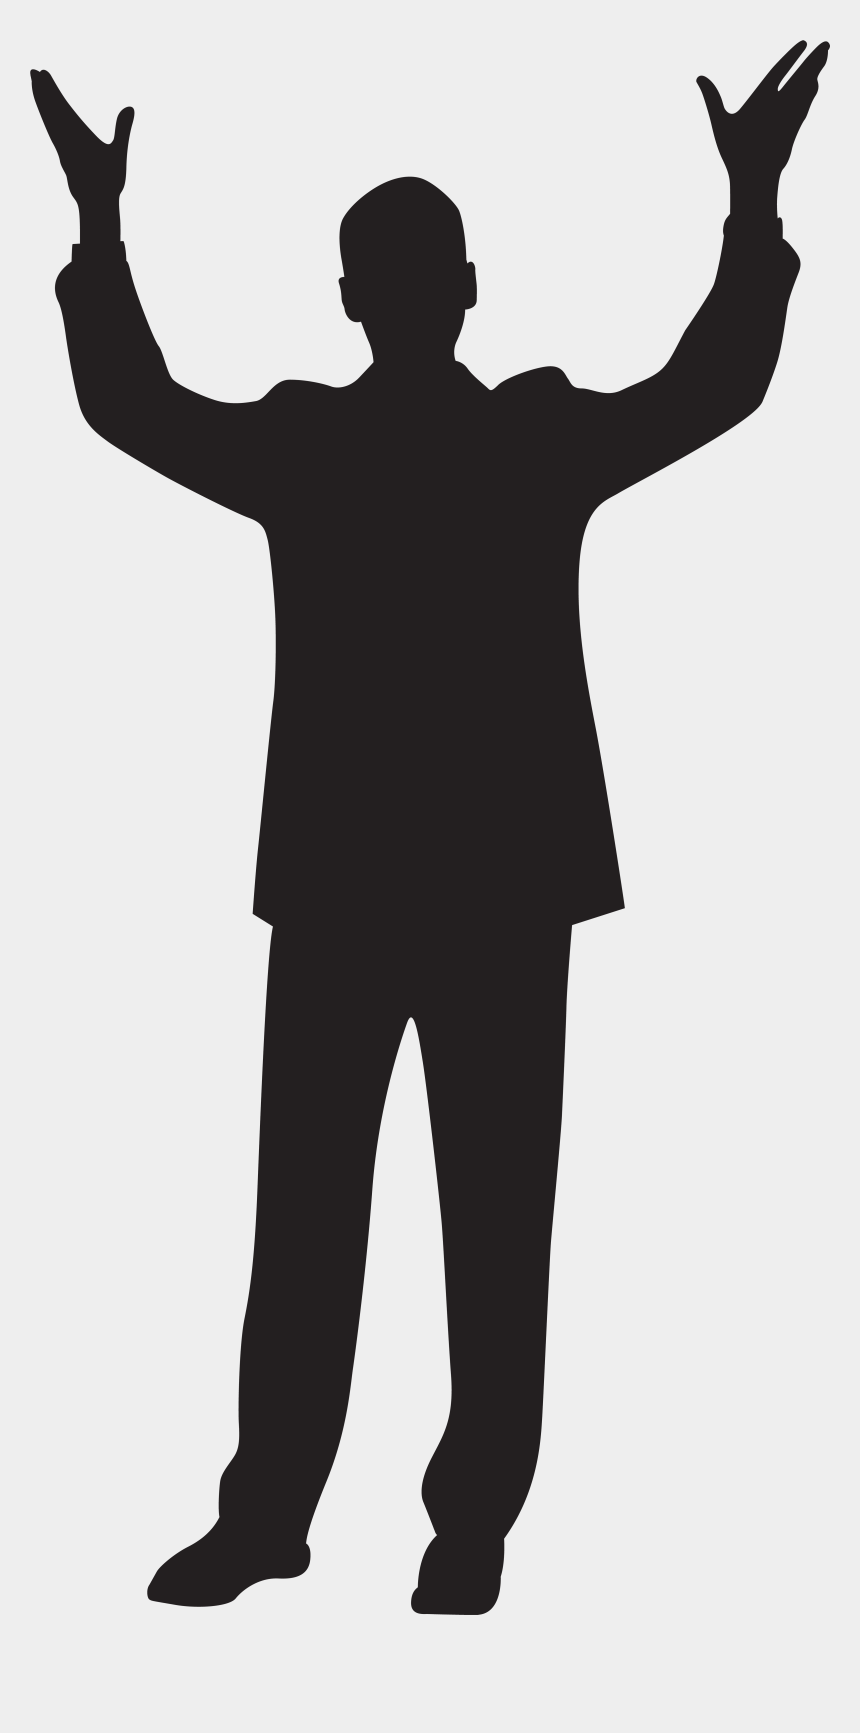 old man clipart, Cartoons - Man With Hands Up Silhouette Clip Art Imageu200b Gallery - Silhouette Of Person Hand Up